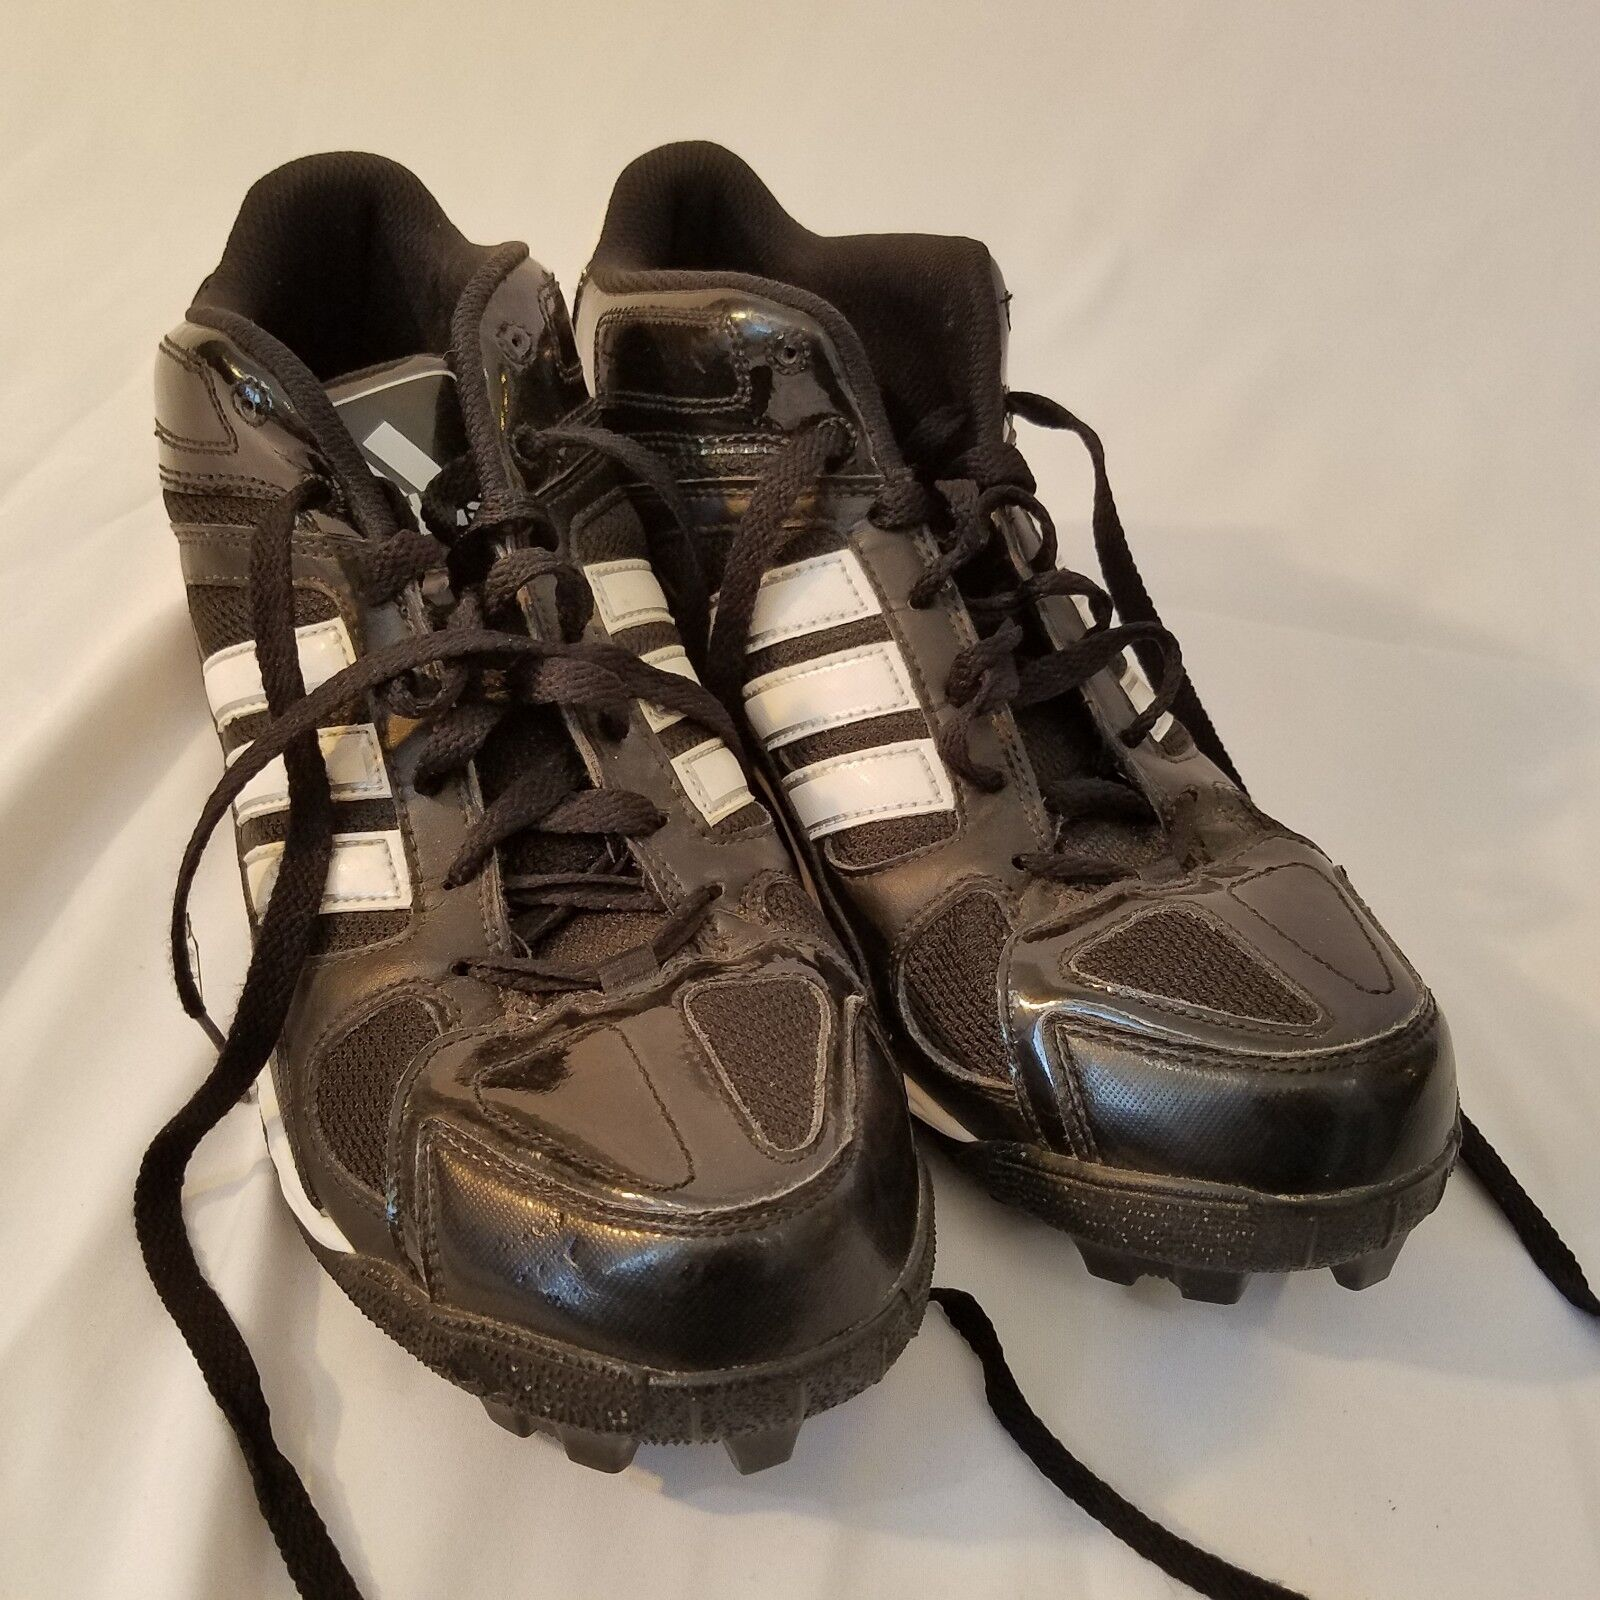 on sale f2eb9 8ac5e Adidas Mens Football Cleats Shoes Athletic CRAZY QUICK Black 3 Stripe Size  10.5 212b60